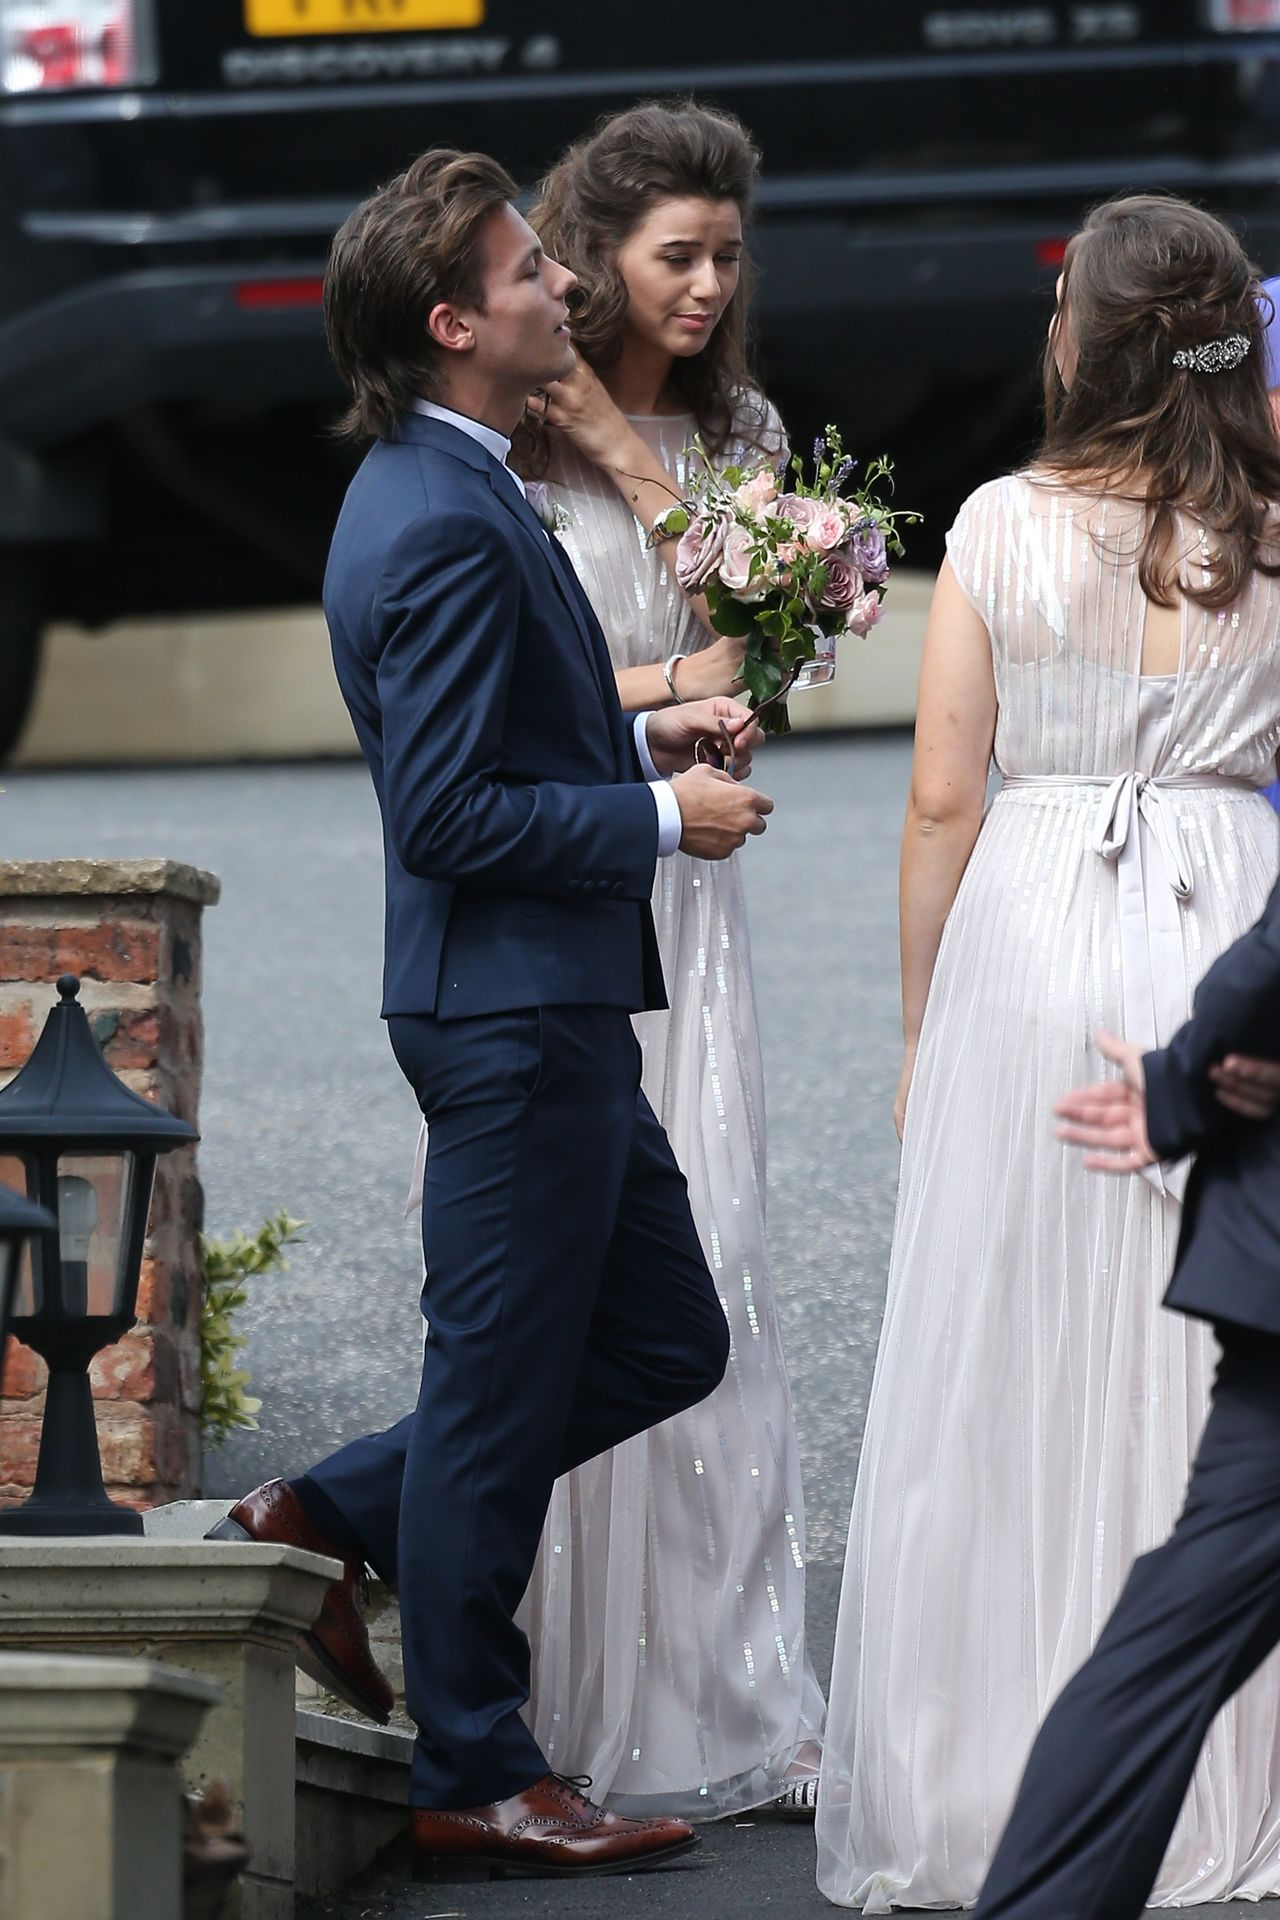 Eleanor and Louis at Jay's wedding - Eleanor Calder Photo ...